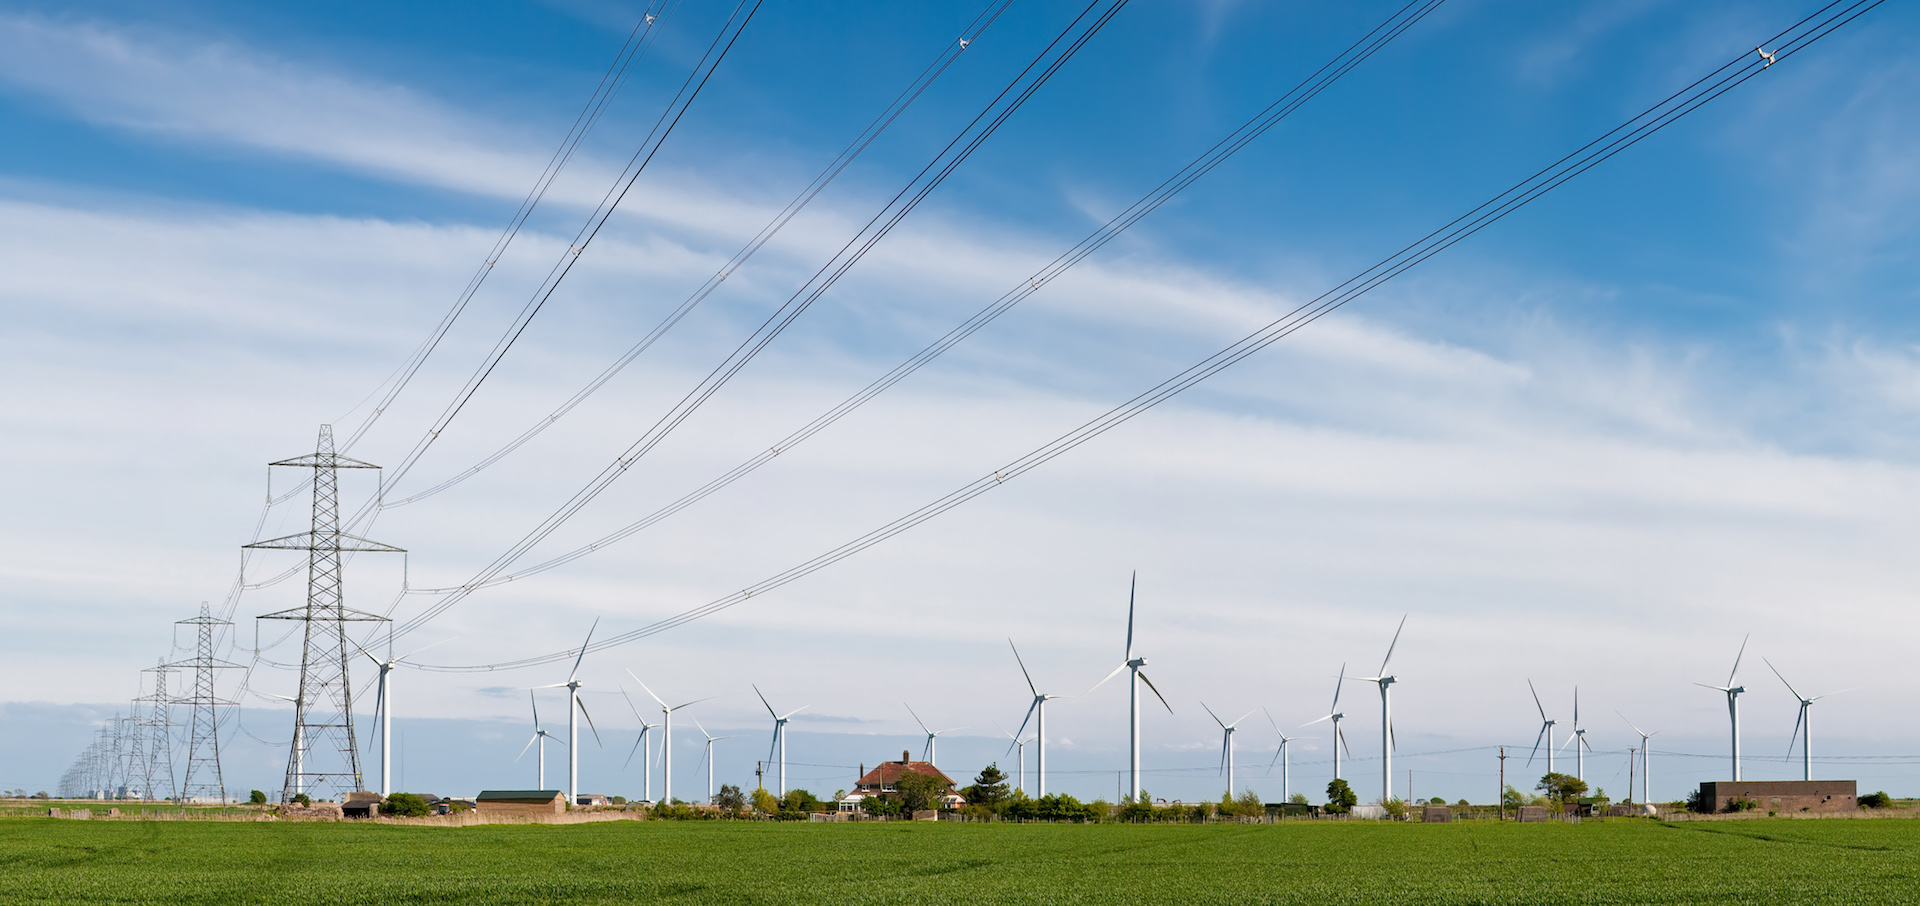 Power lines and pylons looking towards the horizon with windmills in a green field